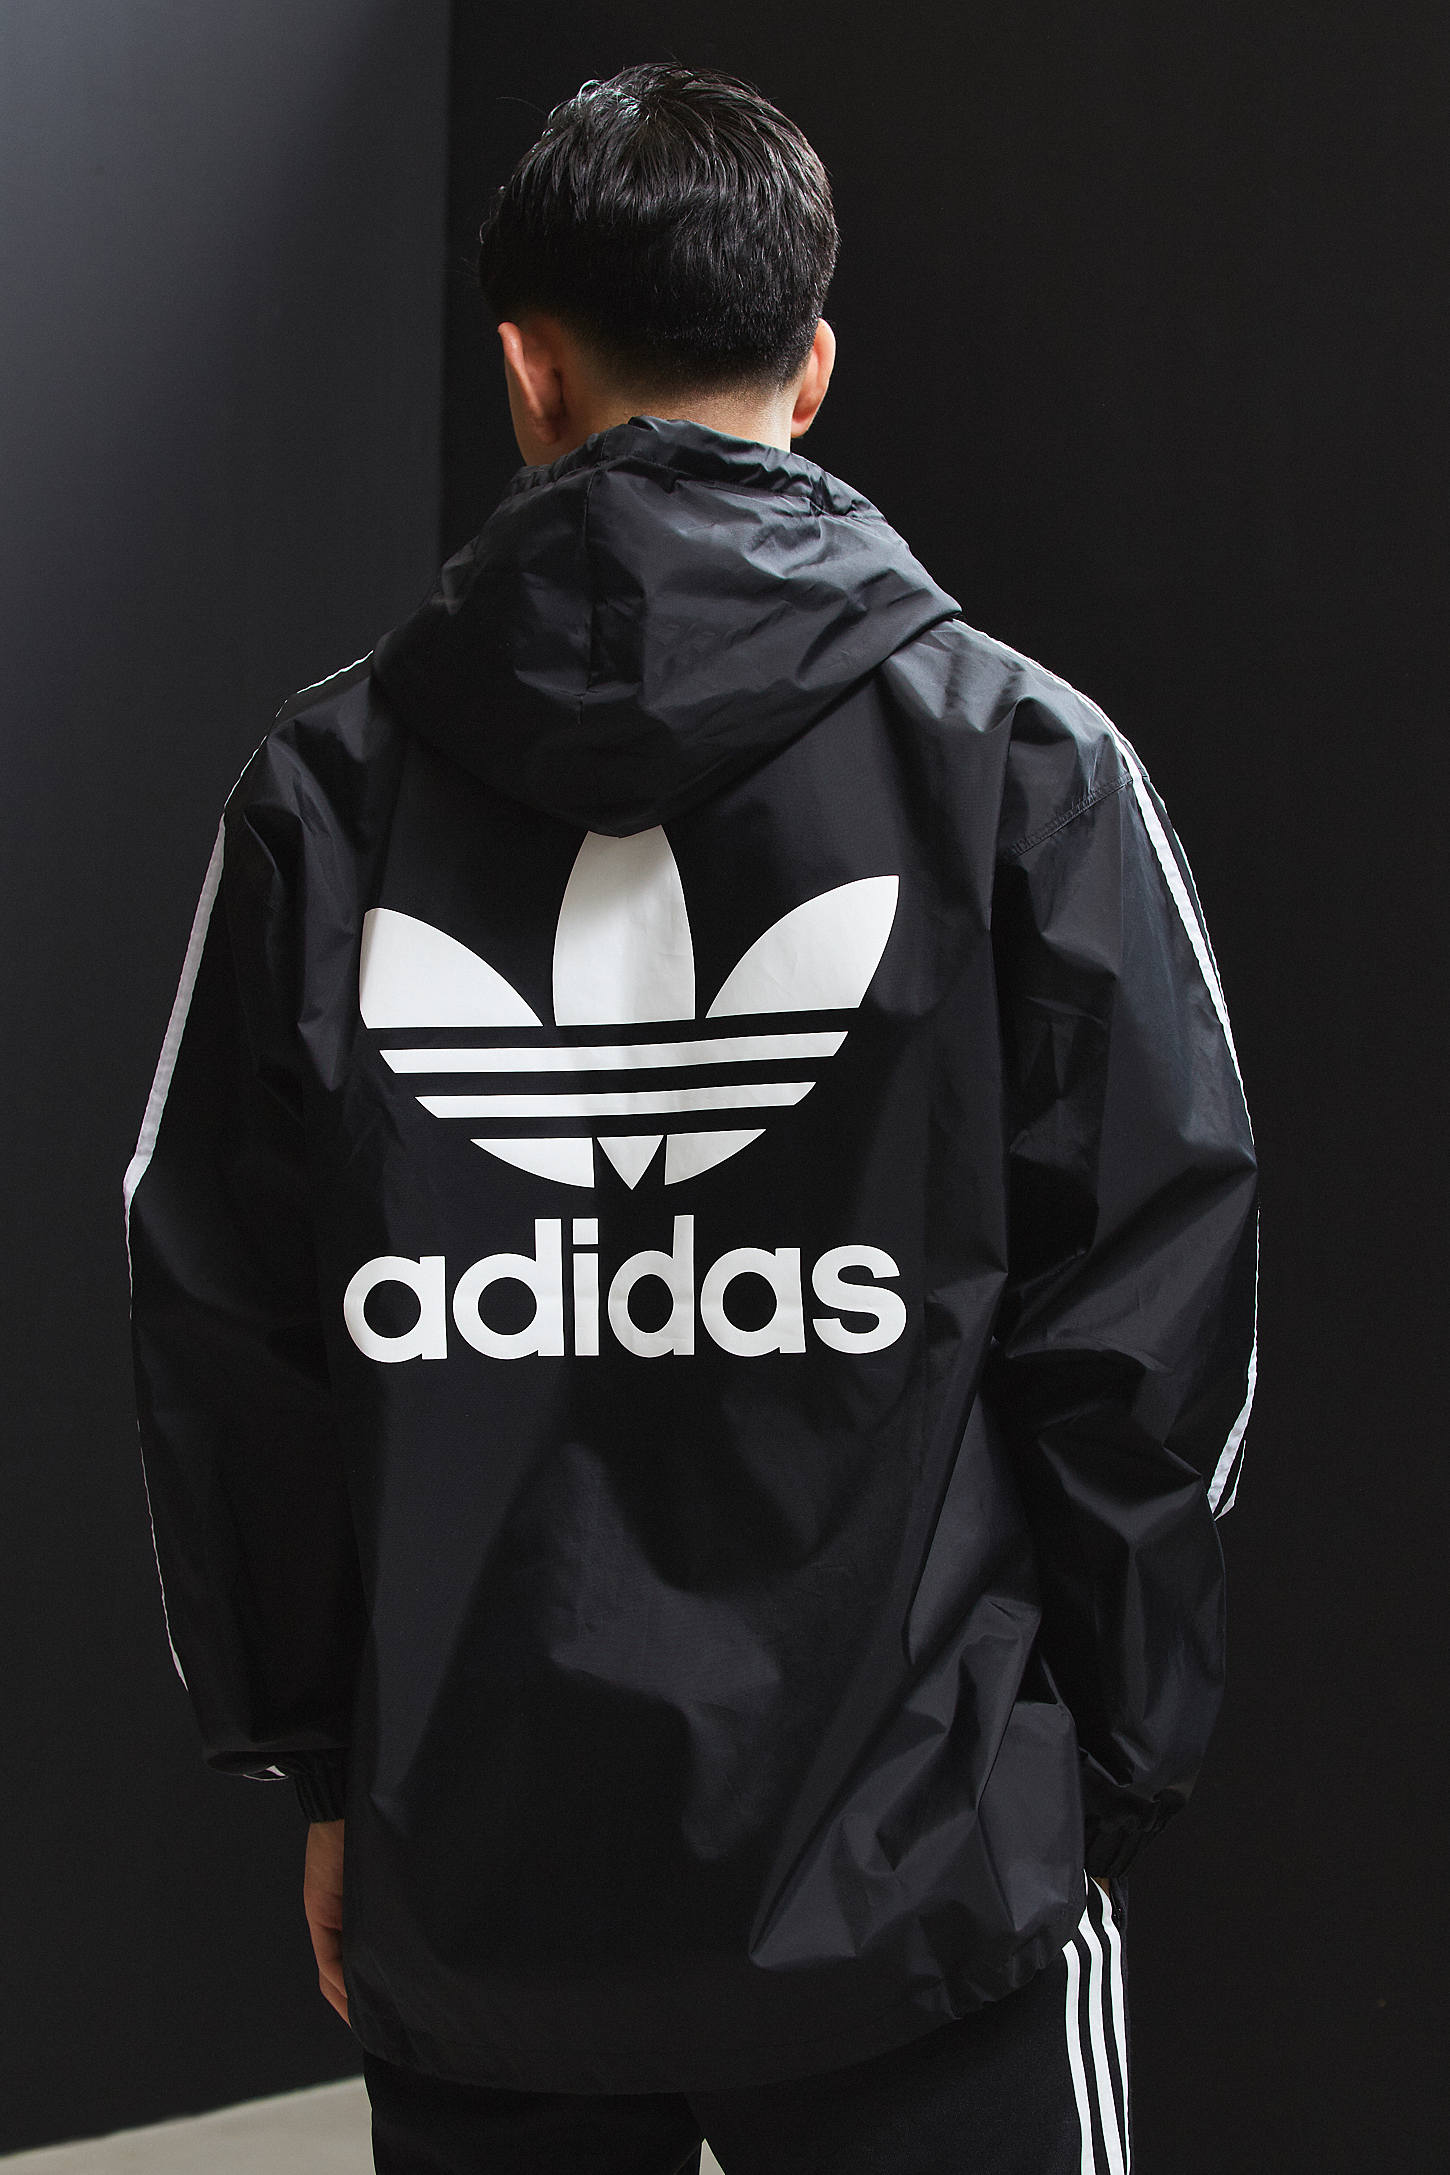 Adidas anorak Jacket Urban Outfitters